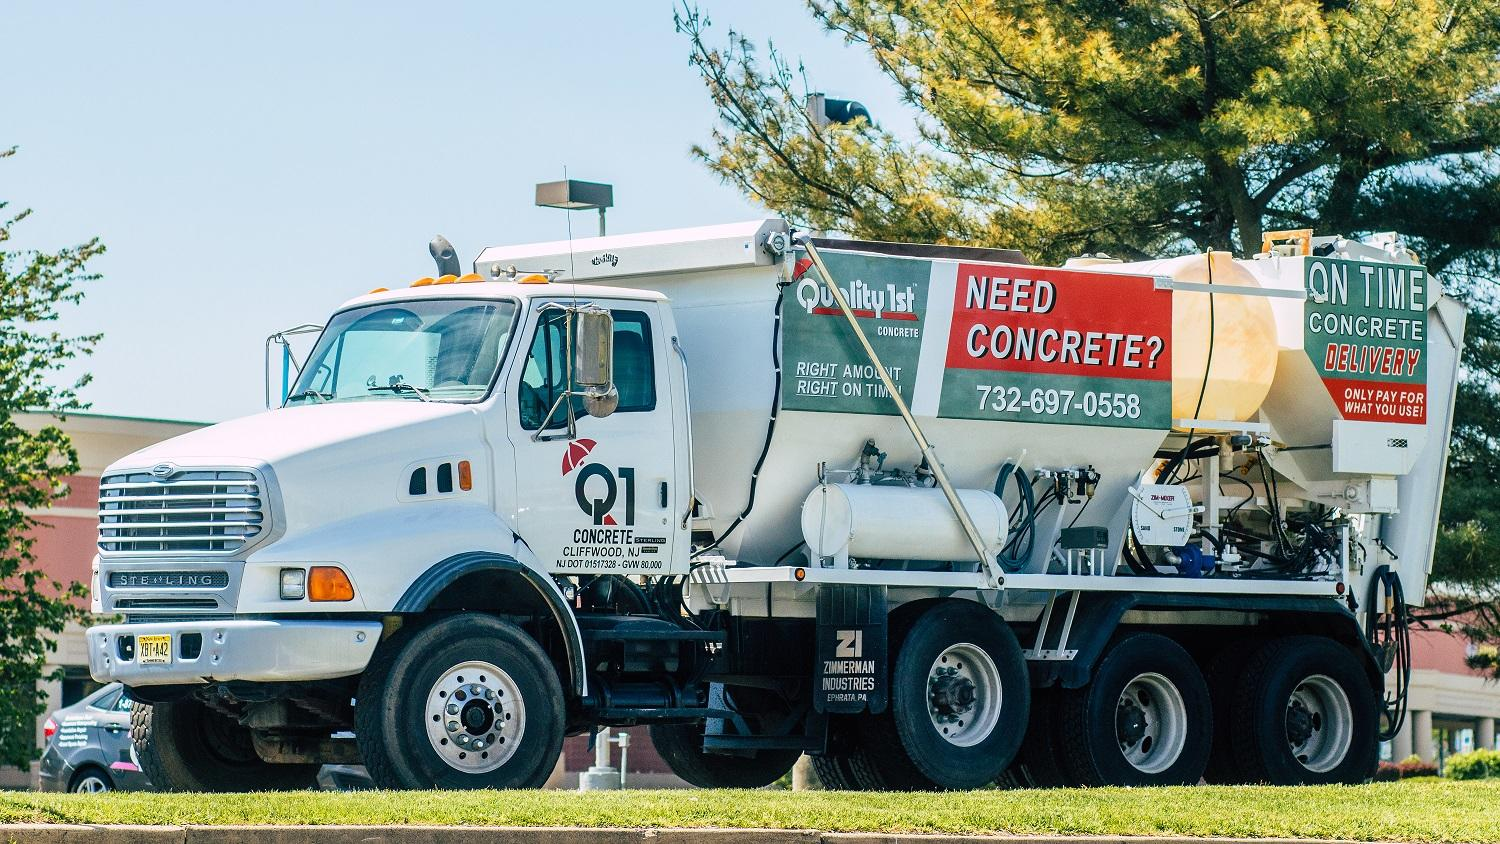 Concrete Service In New Jersey